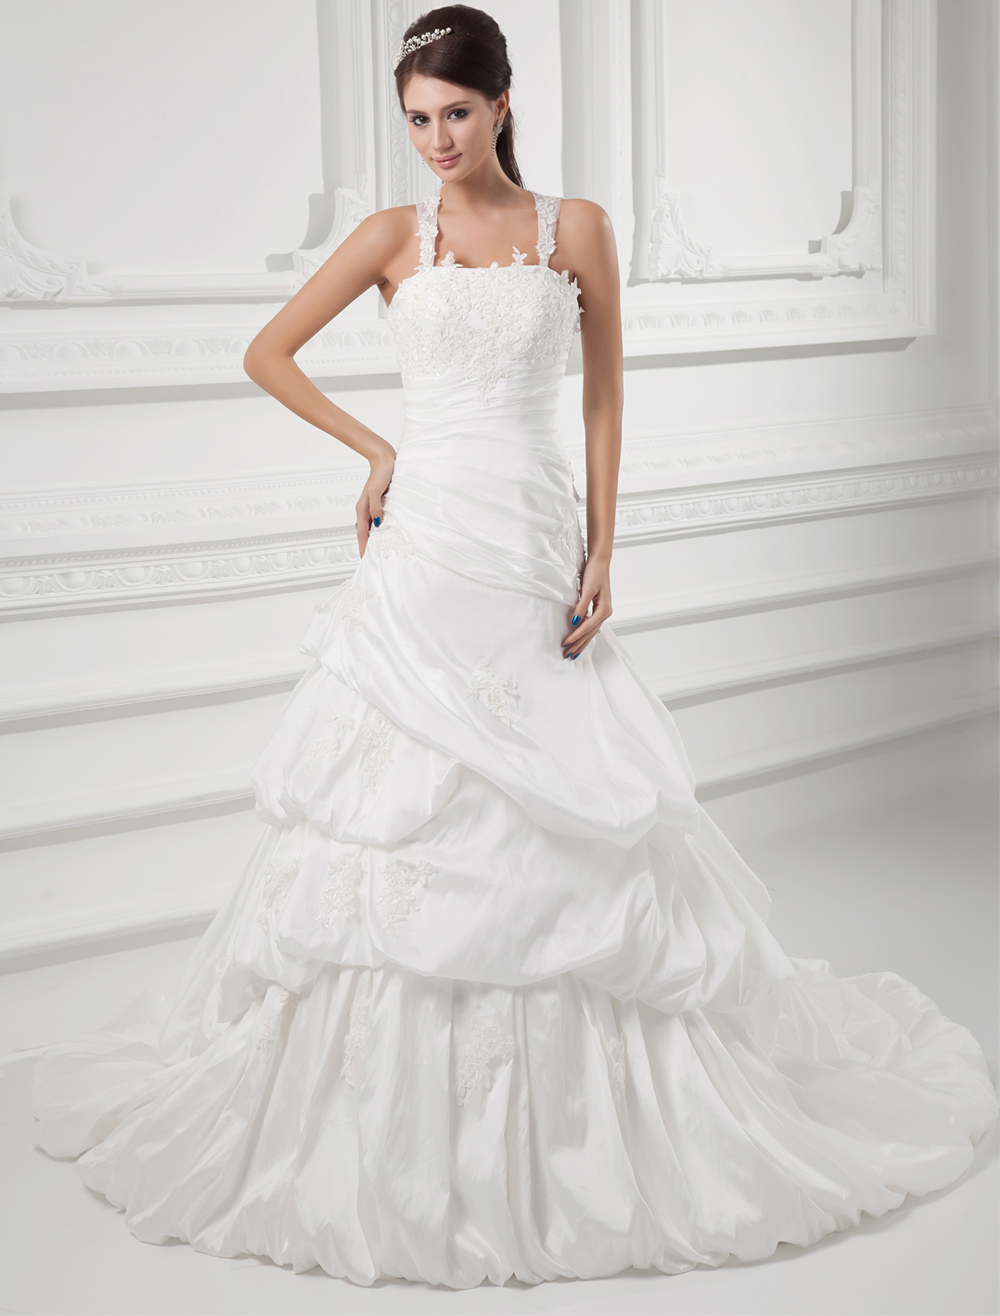 Classic Ivory Ball Gown Beading Taffeta Bridal Wedding Gown